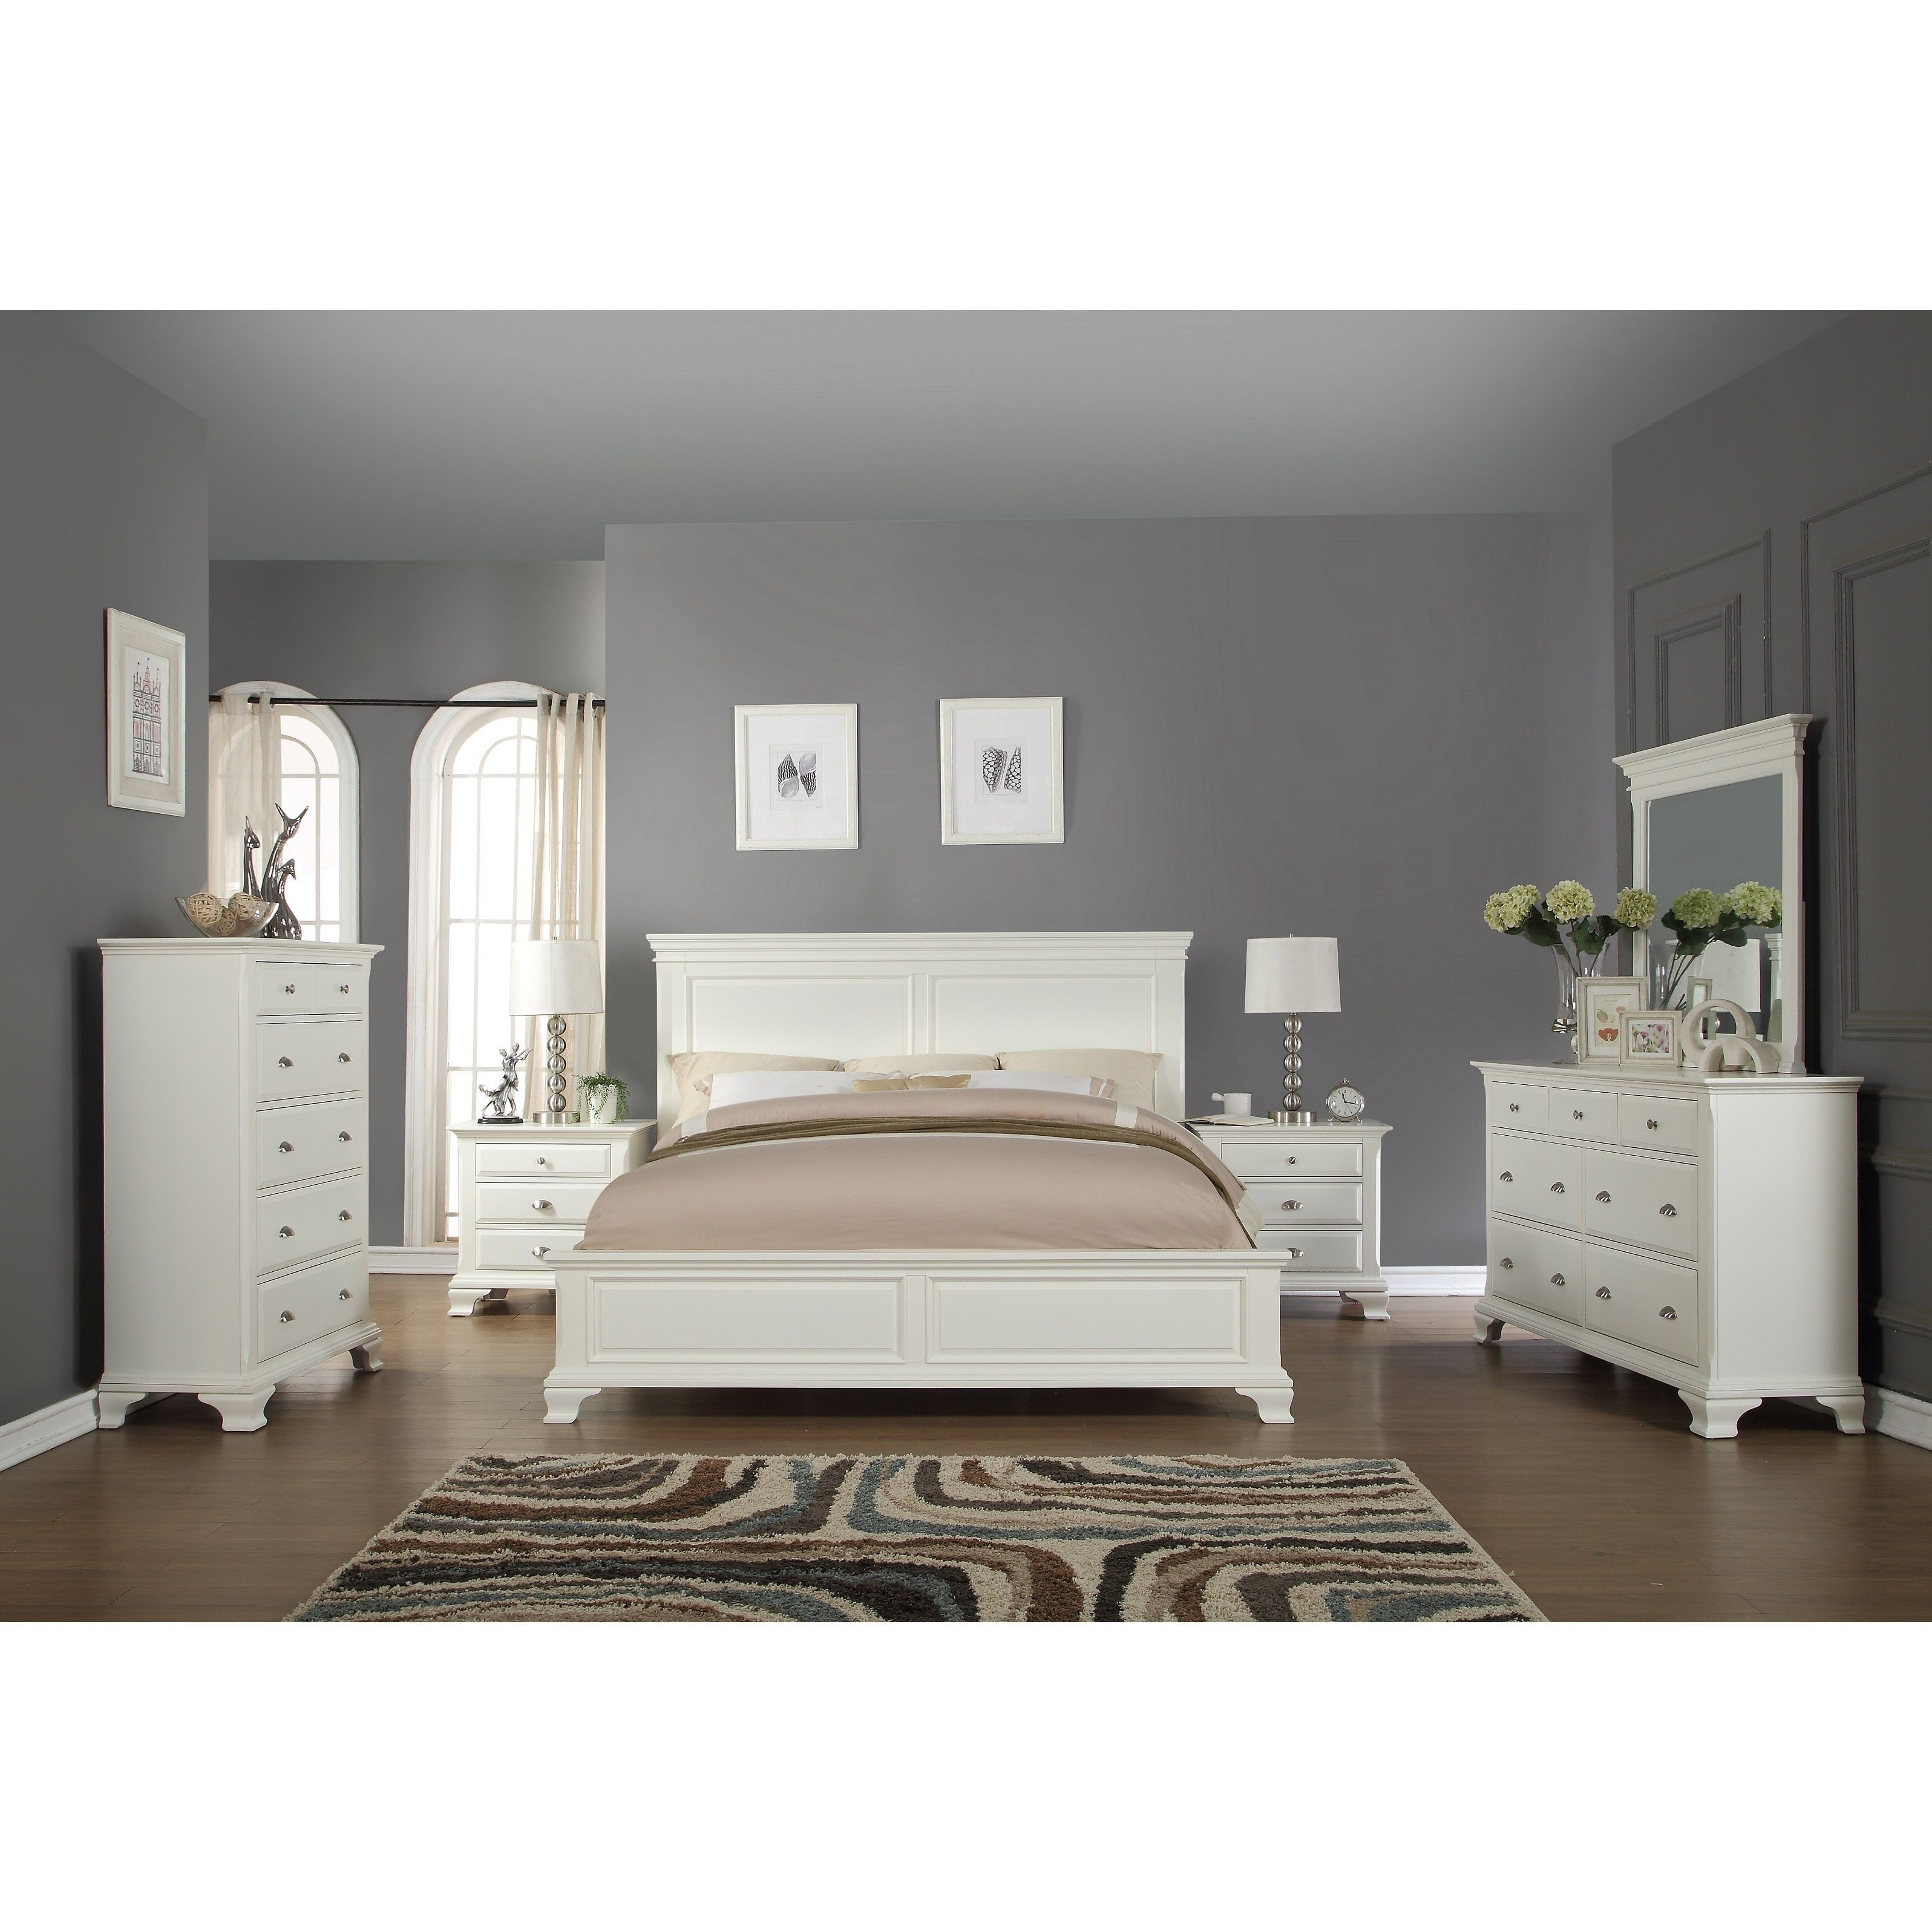 Overstock Com Online Shopping Bedding Furniture Electronics Jewelry Clothing More White Wood Bedroom Furniture Wood Bedroom Furniture Sets White Bedroom Set